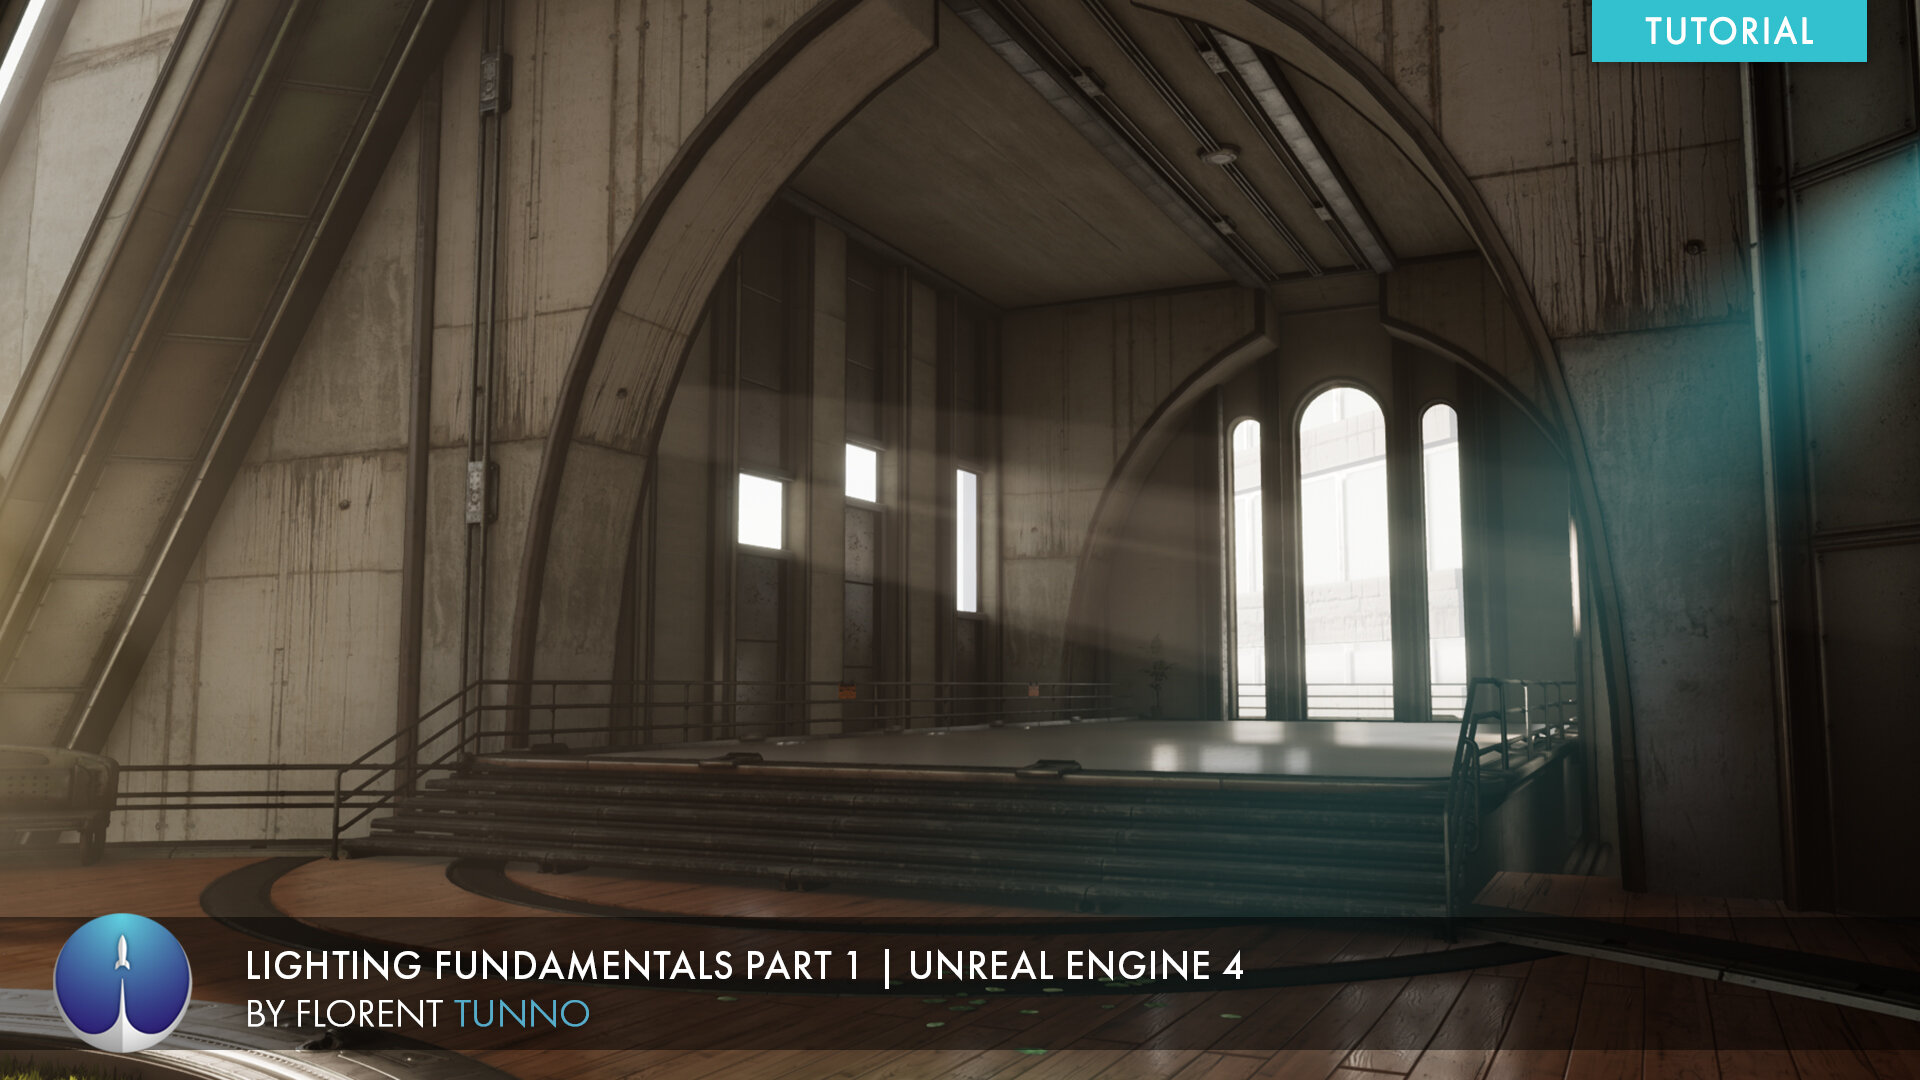 Unreal Engine 4 Lighting Fundamentals Part 1 Florent Tunno Experience Points